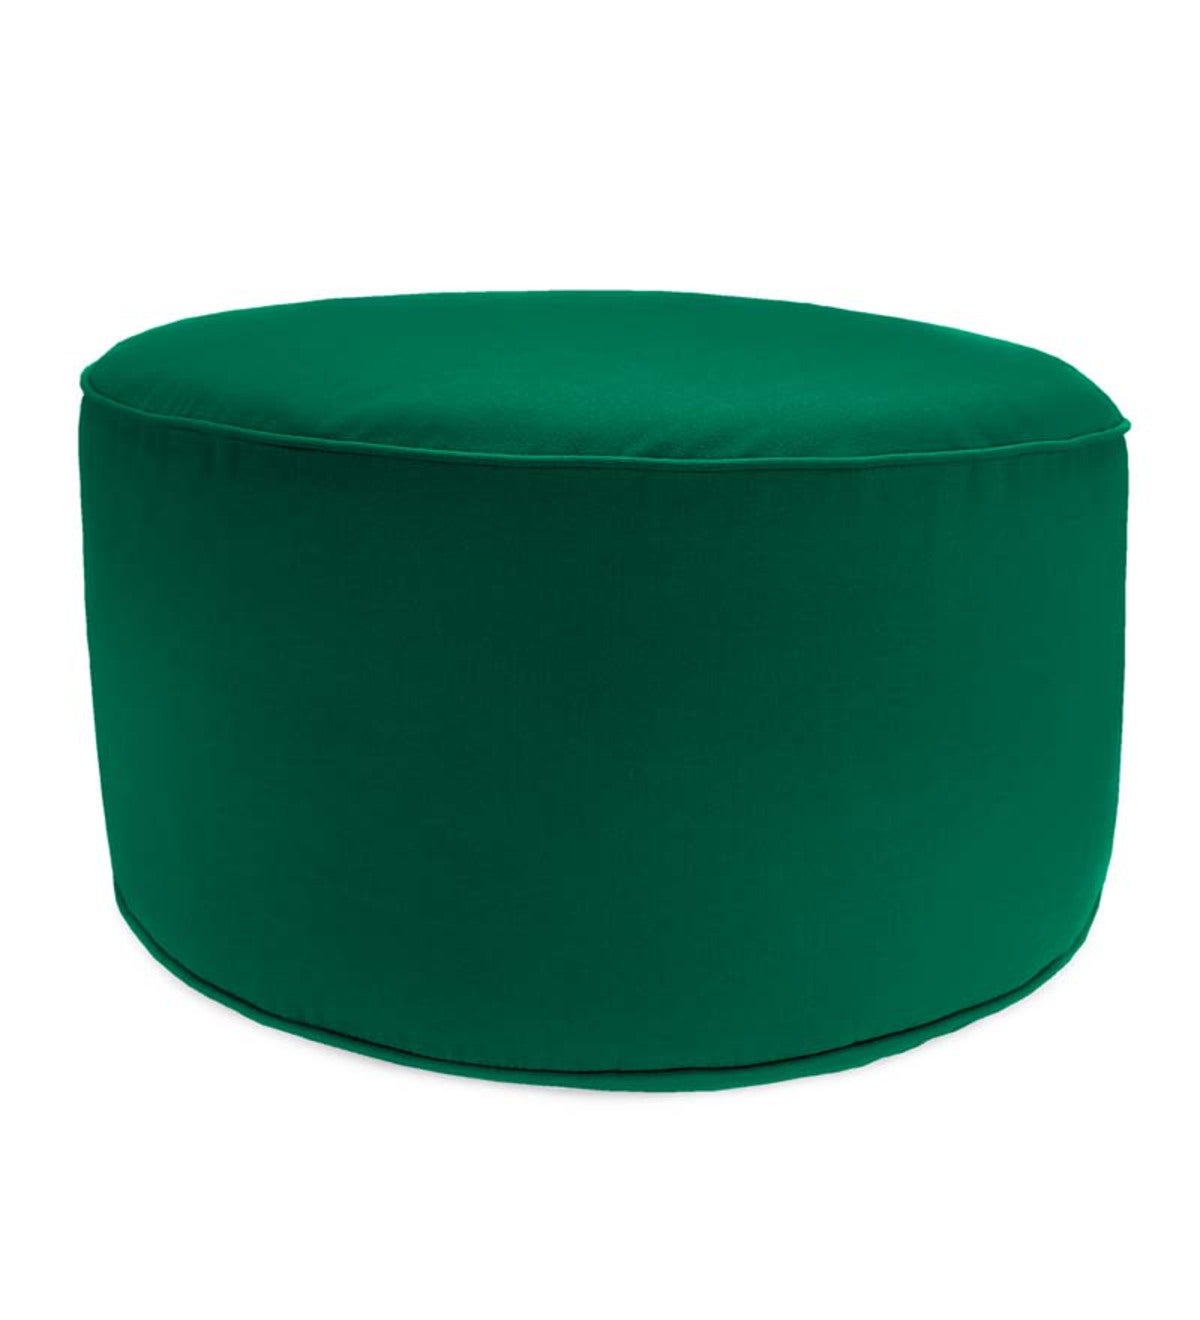 Cool Round Sunbrella Deluxe Outdoor Pouf Ottoman Forest Green Lamtechconsult Wood Chair Design Ideas Lamtechconsultcom